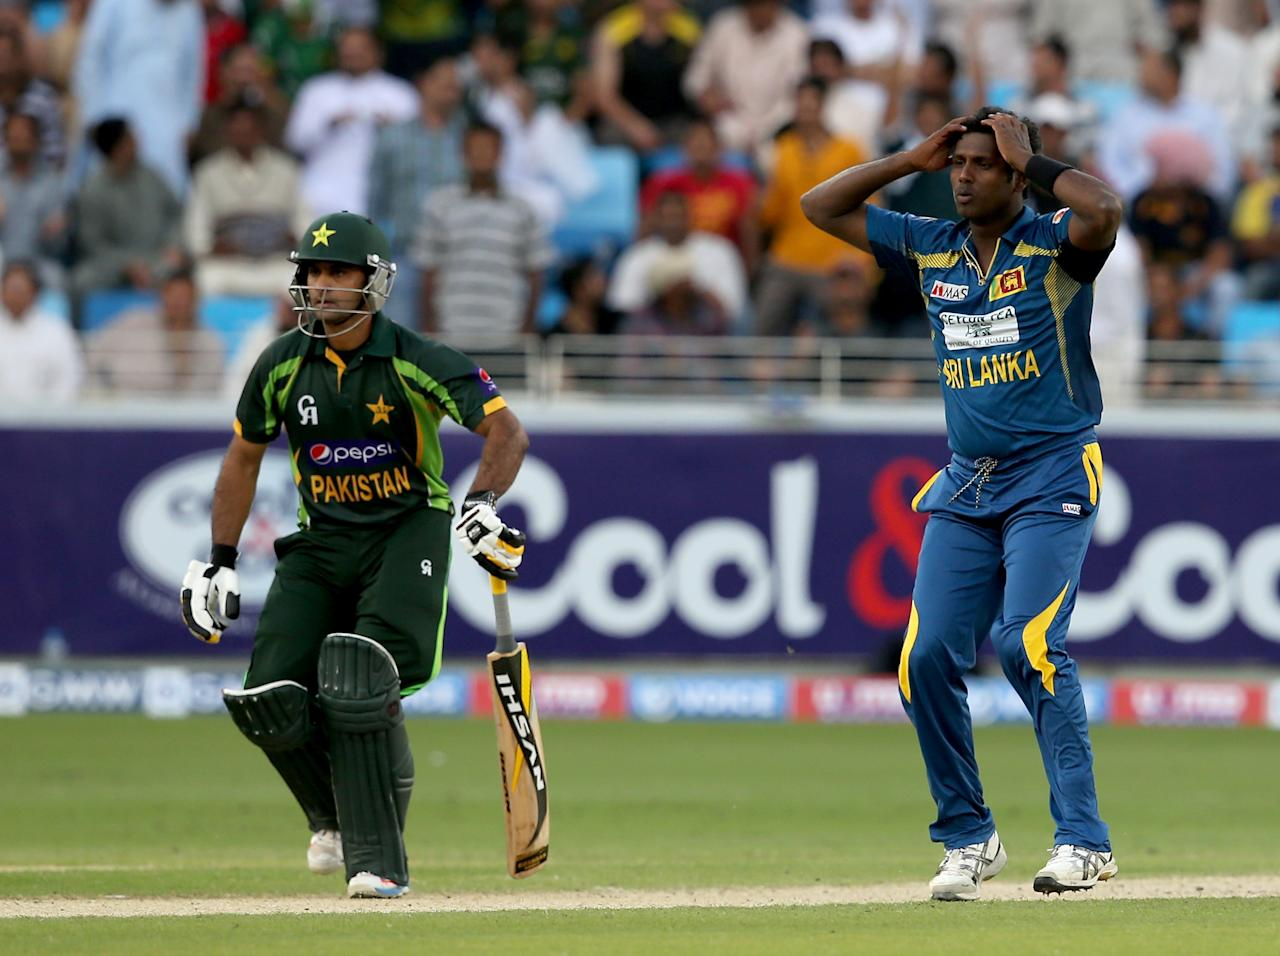 DUBAI, UNITED ARAB EMIRATES - DECEMBER 20:  Angelo Mathews reacts during the second One-Day International (ODI ) match between Sri Lanka and Pakistan at the Dubai Sports City Cricket Stadium on December 20, 2013 in Dubai, United Arab Emirates.  (Photo by Francois Nel/Getty Images)